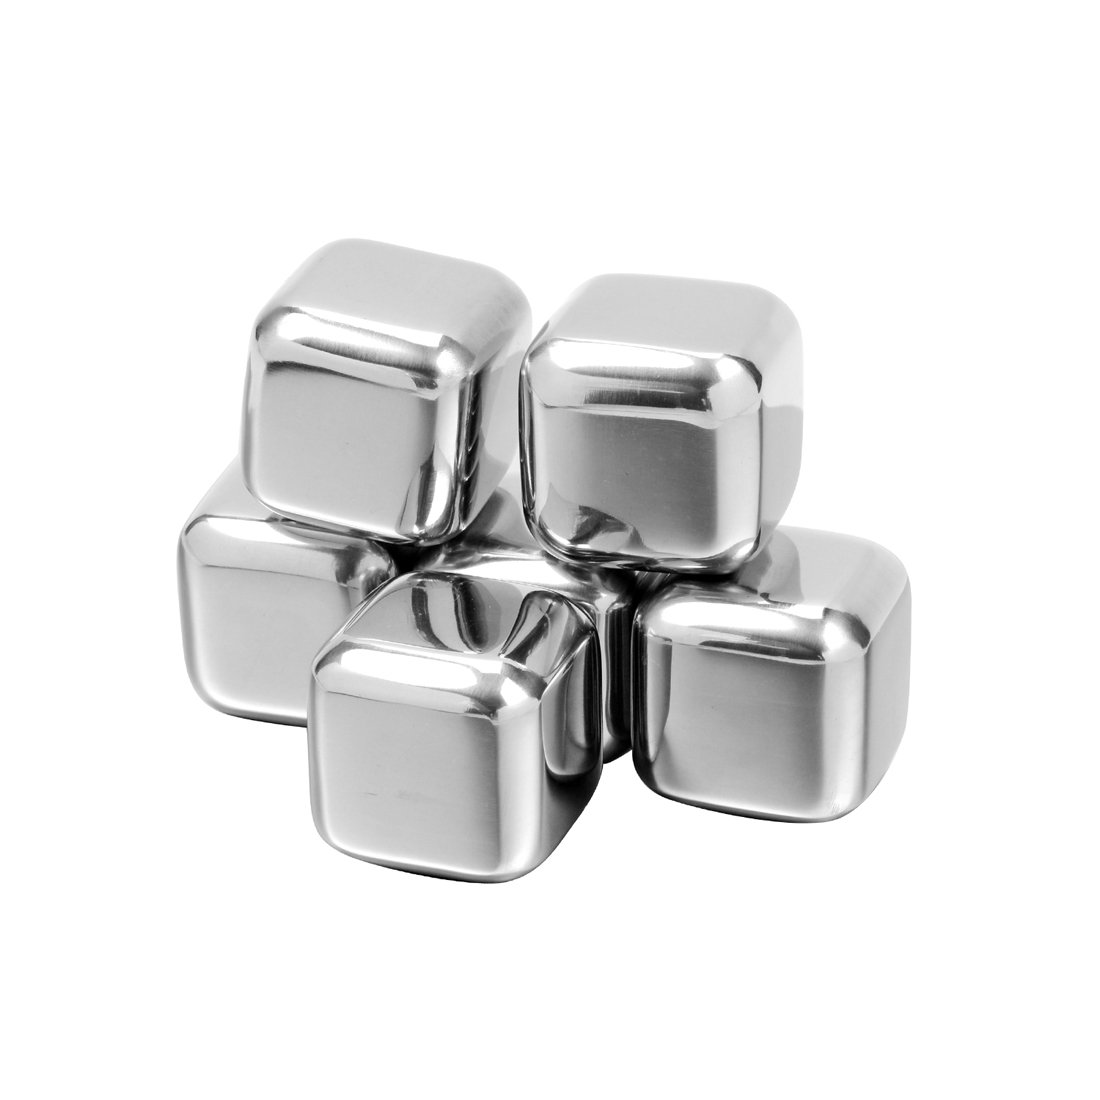 Haomacro Stainless Steel Whiskey Stones, Chilling Reusable Ice Cubes for Whiskey, Beer, Beverage and Red Wine, Pack of 6